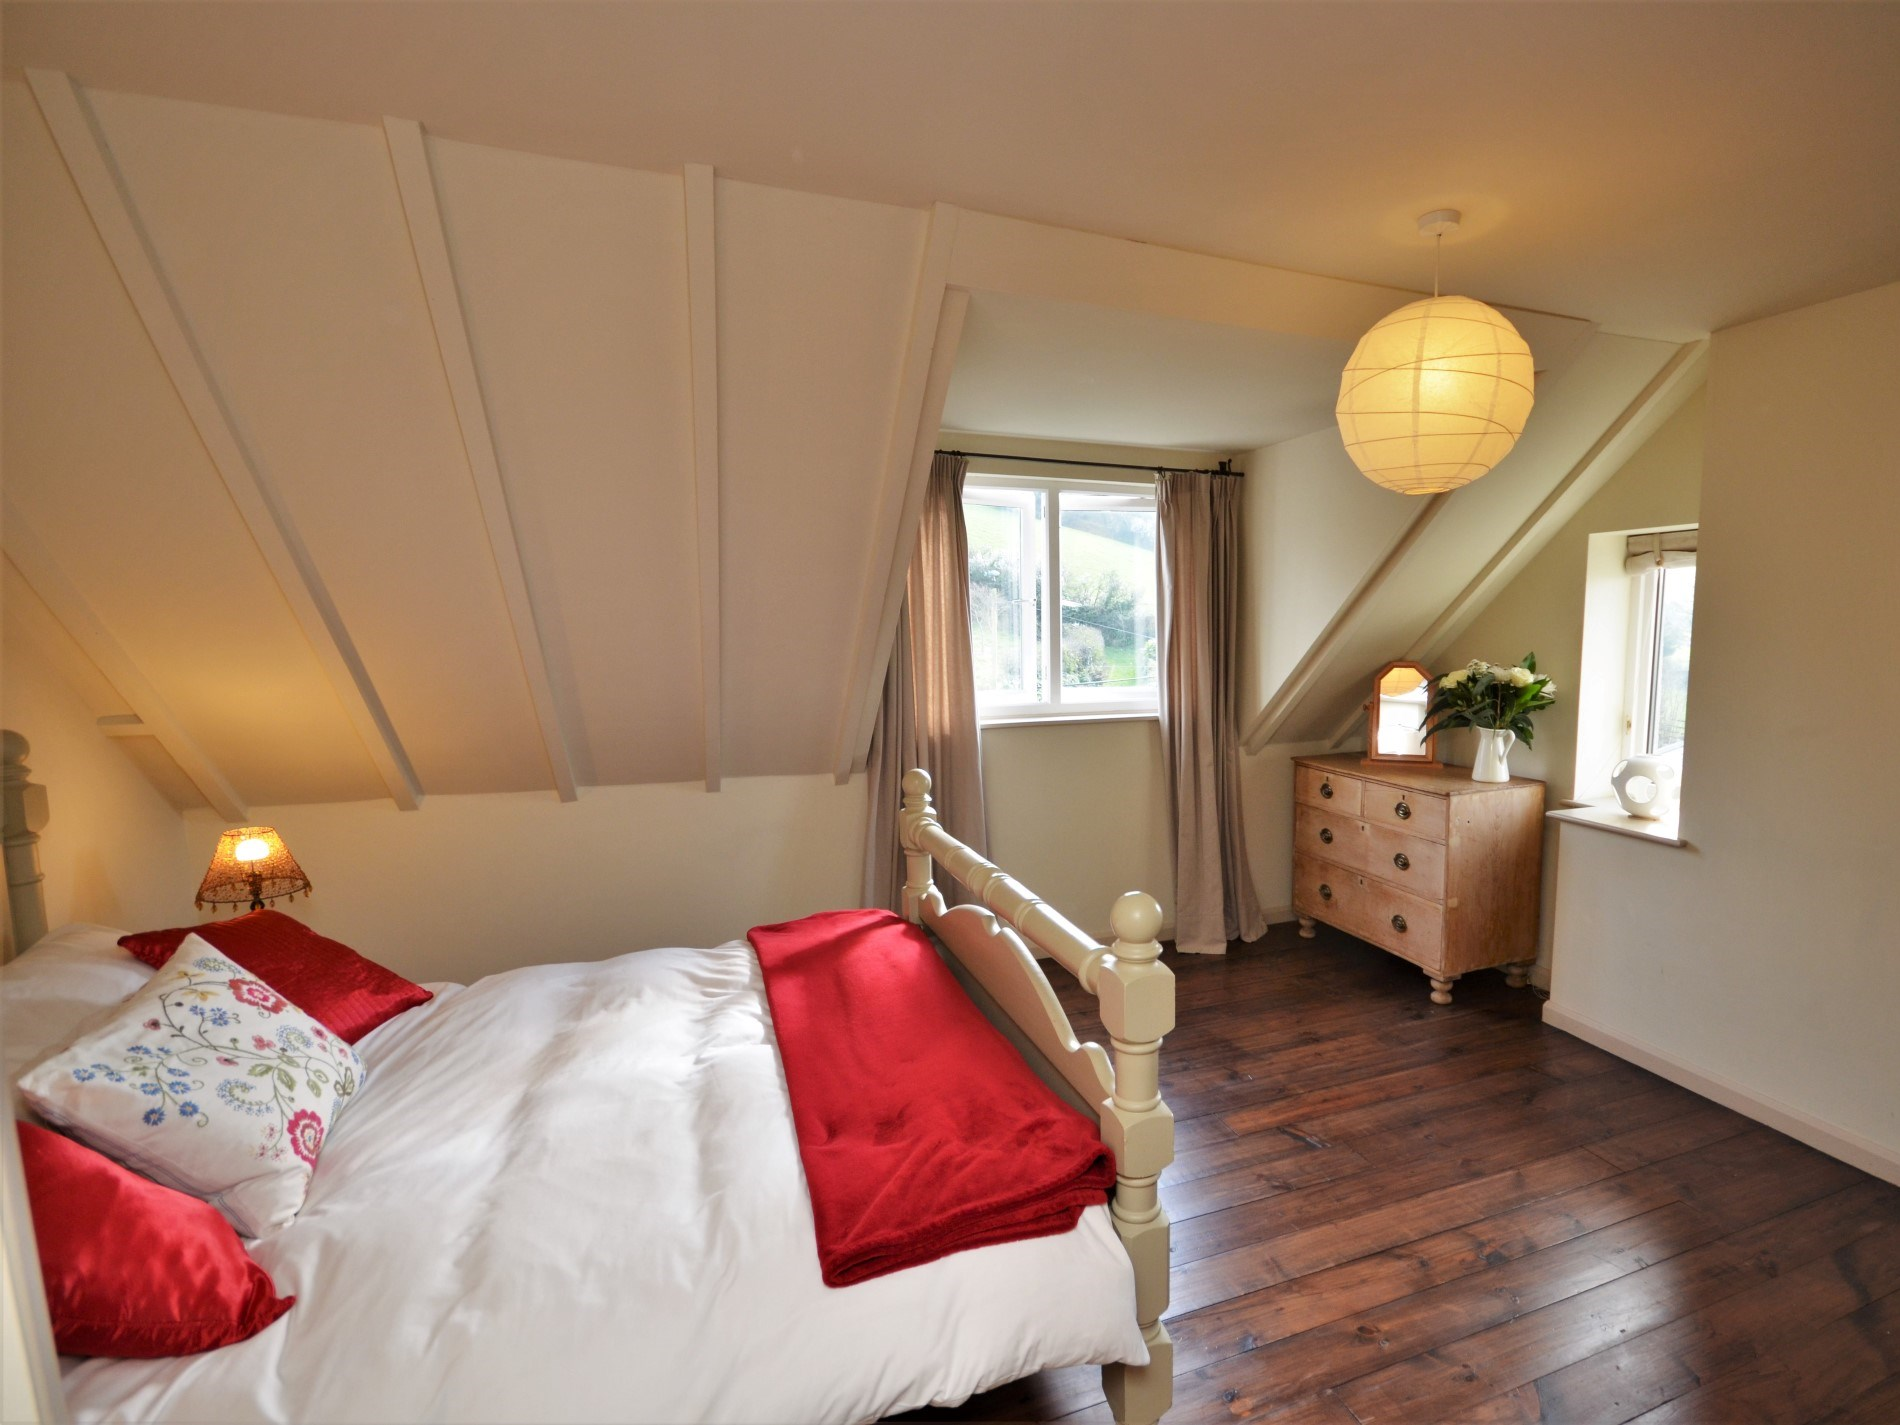 Spacious double room with a view